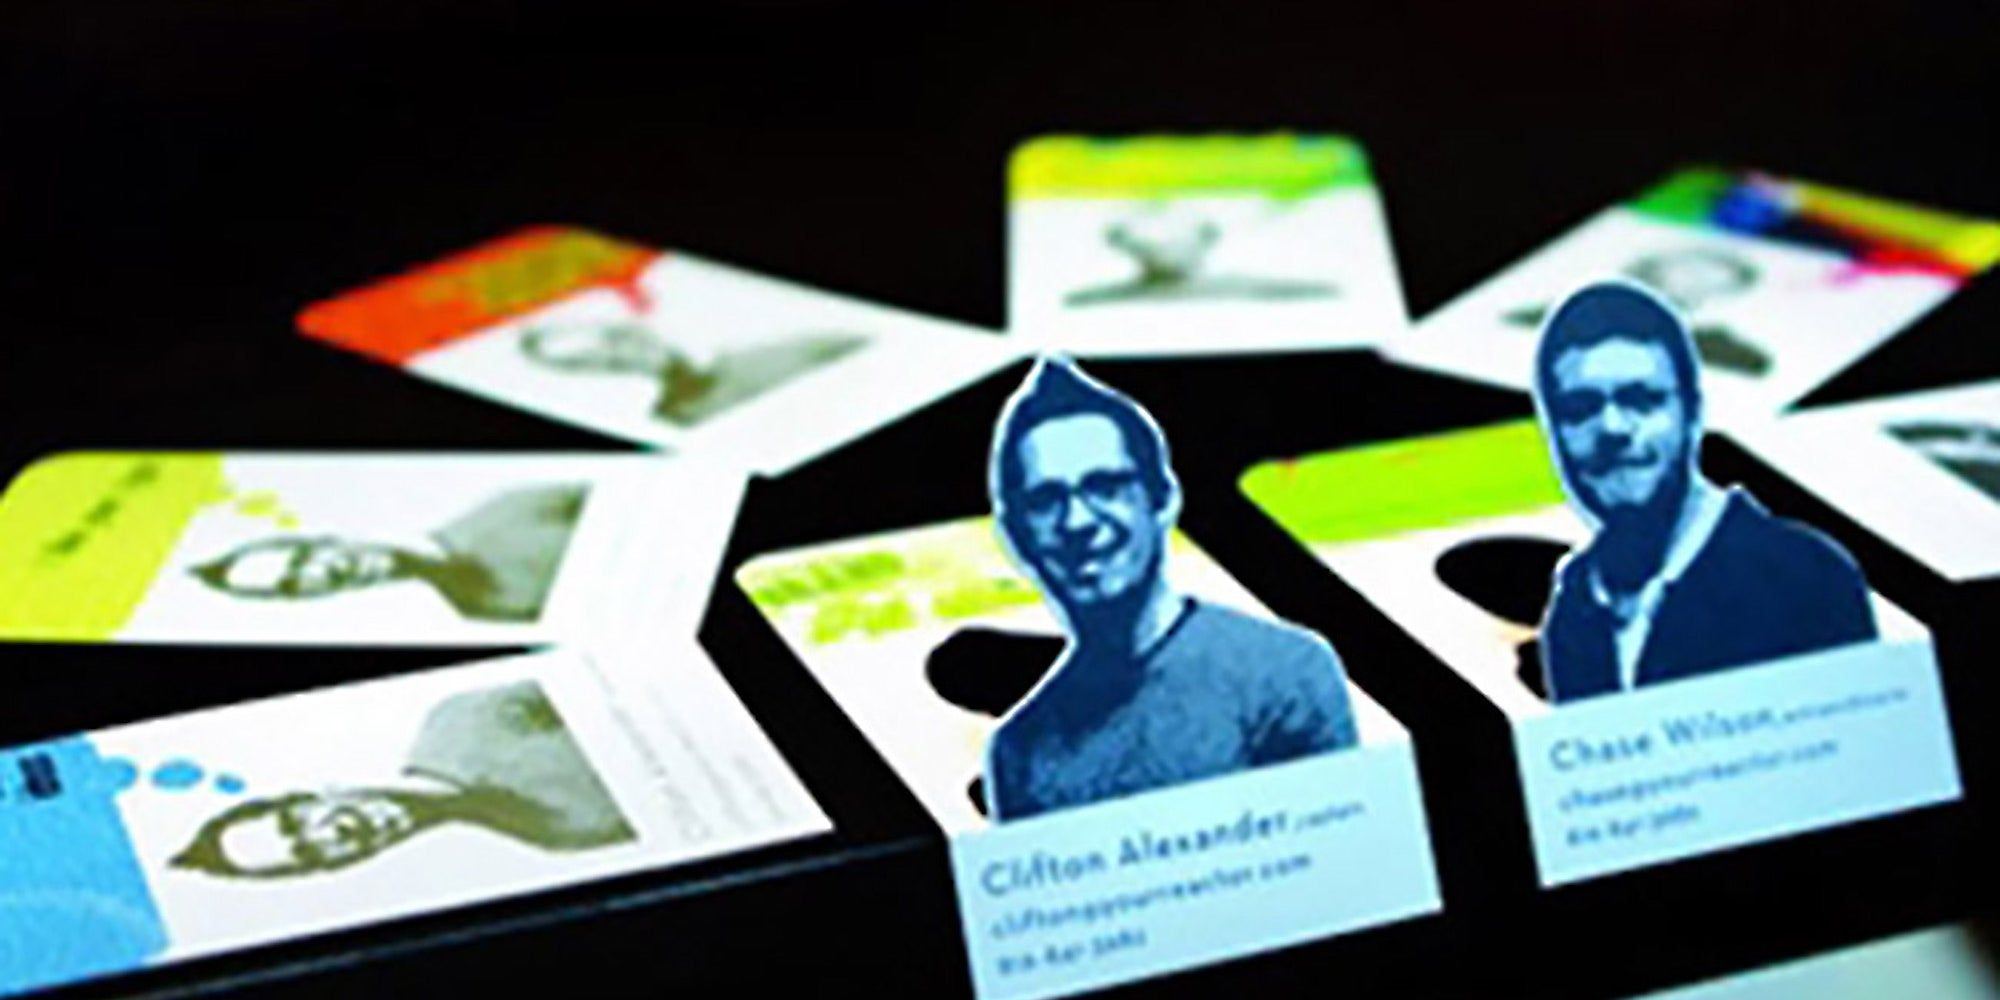 20 Inspired Business-Card Designs to Better Market Your Startup